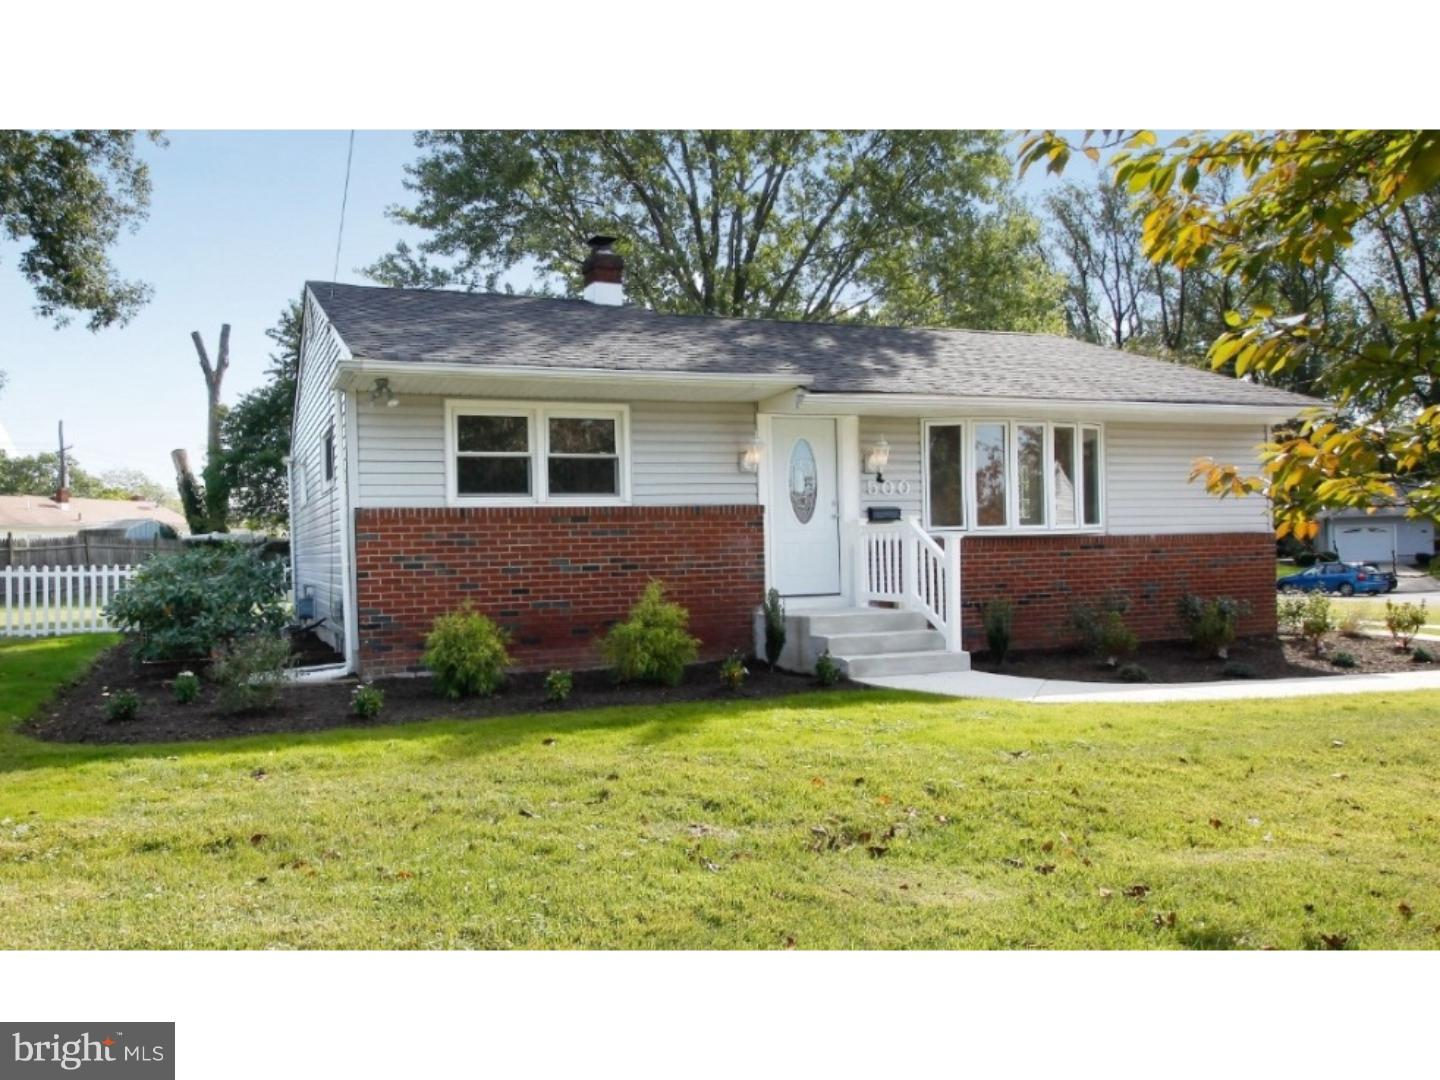 500 S BEVERLY CIRCLE, MAGNOLIA, NJ 08049